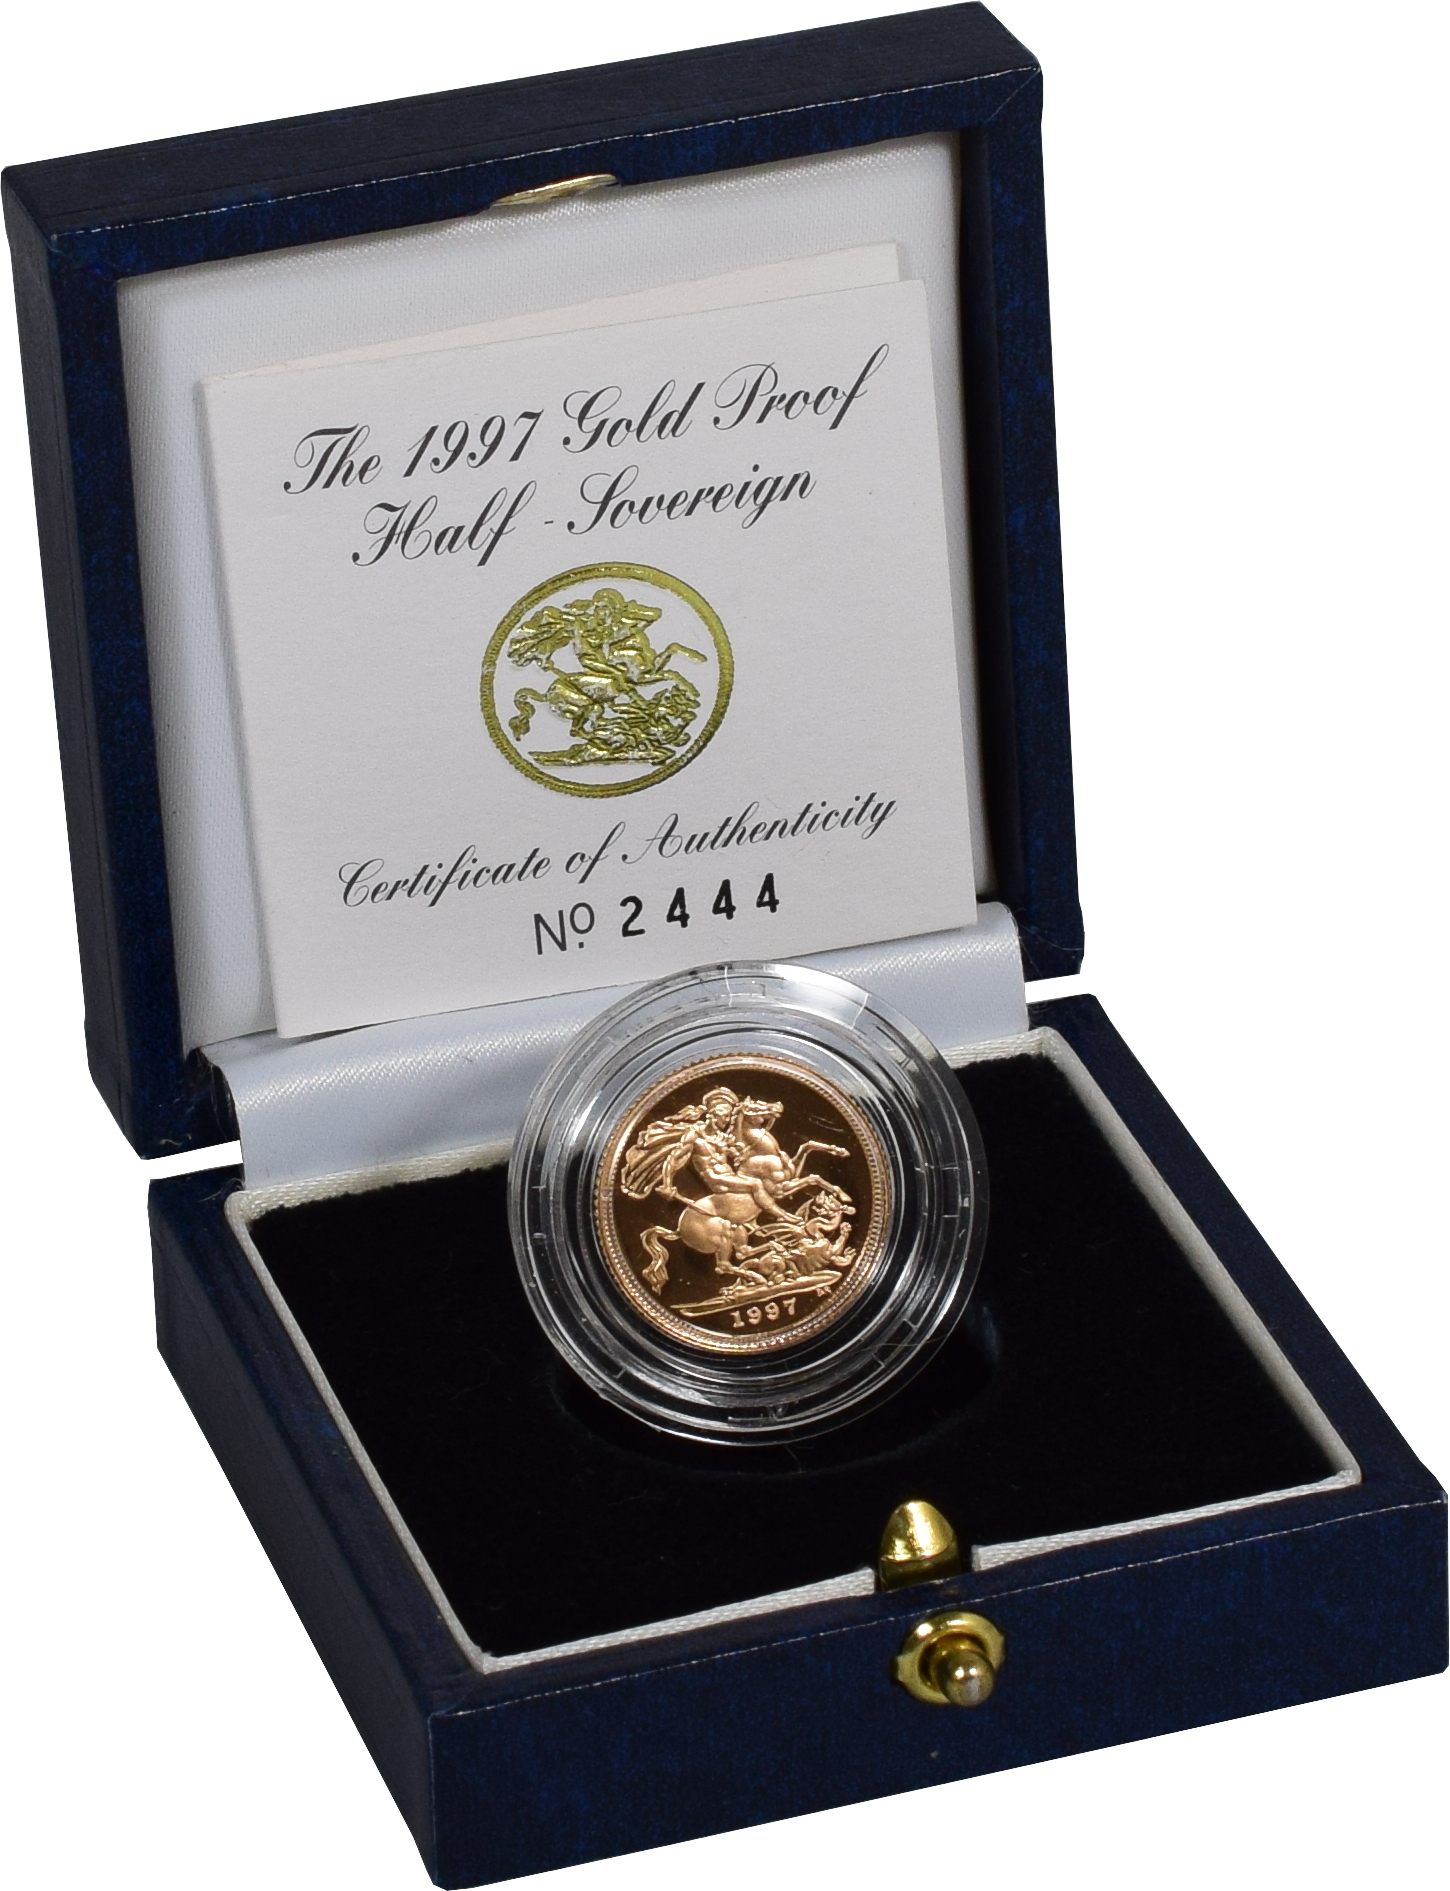 Gold Proof 1997 Half Sovereign Boxed